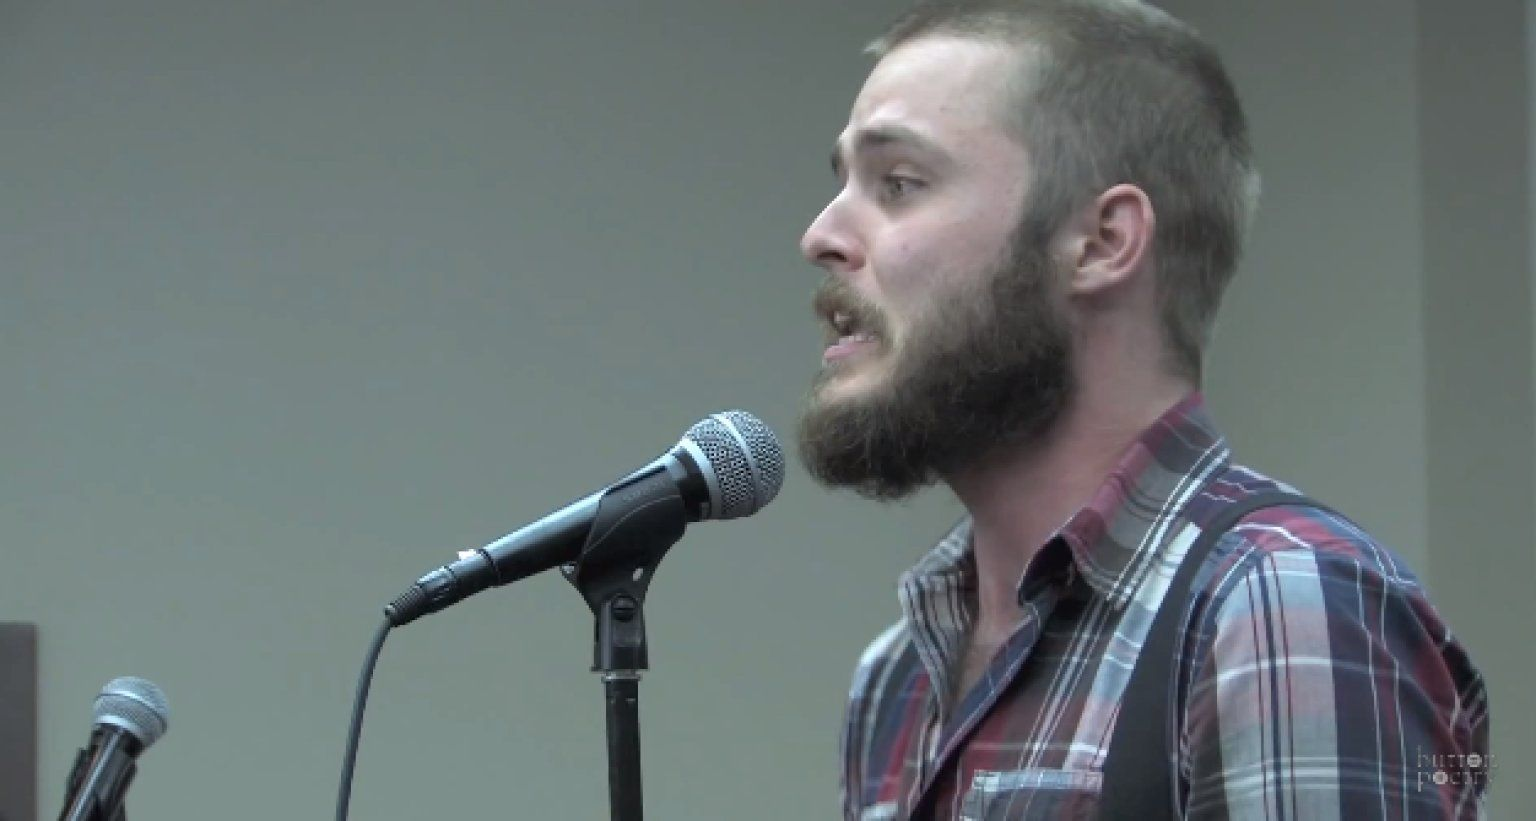 Neil Hilborn, Man With OCD, Performs Heartbreaking Poem About Falling In Love, Inspires Redditors